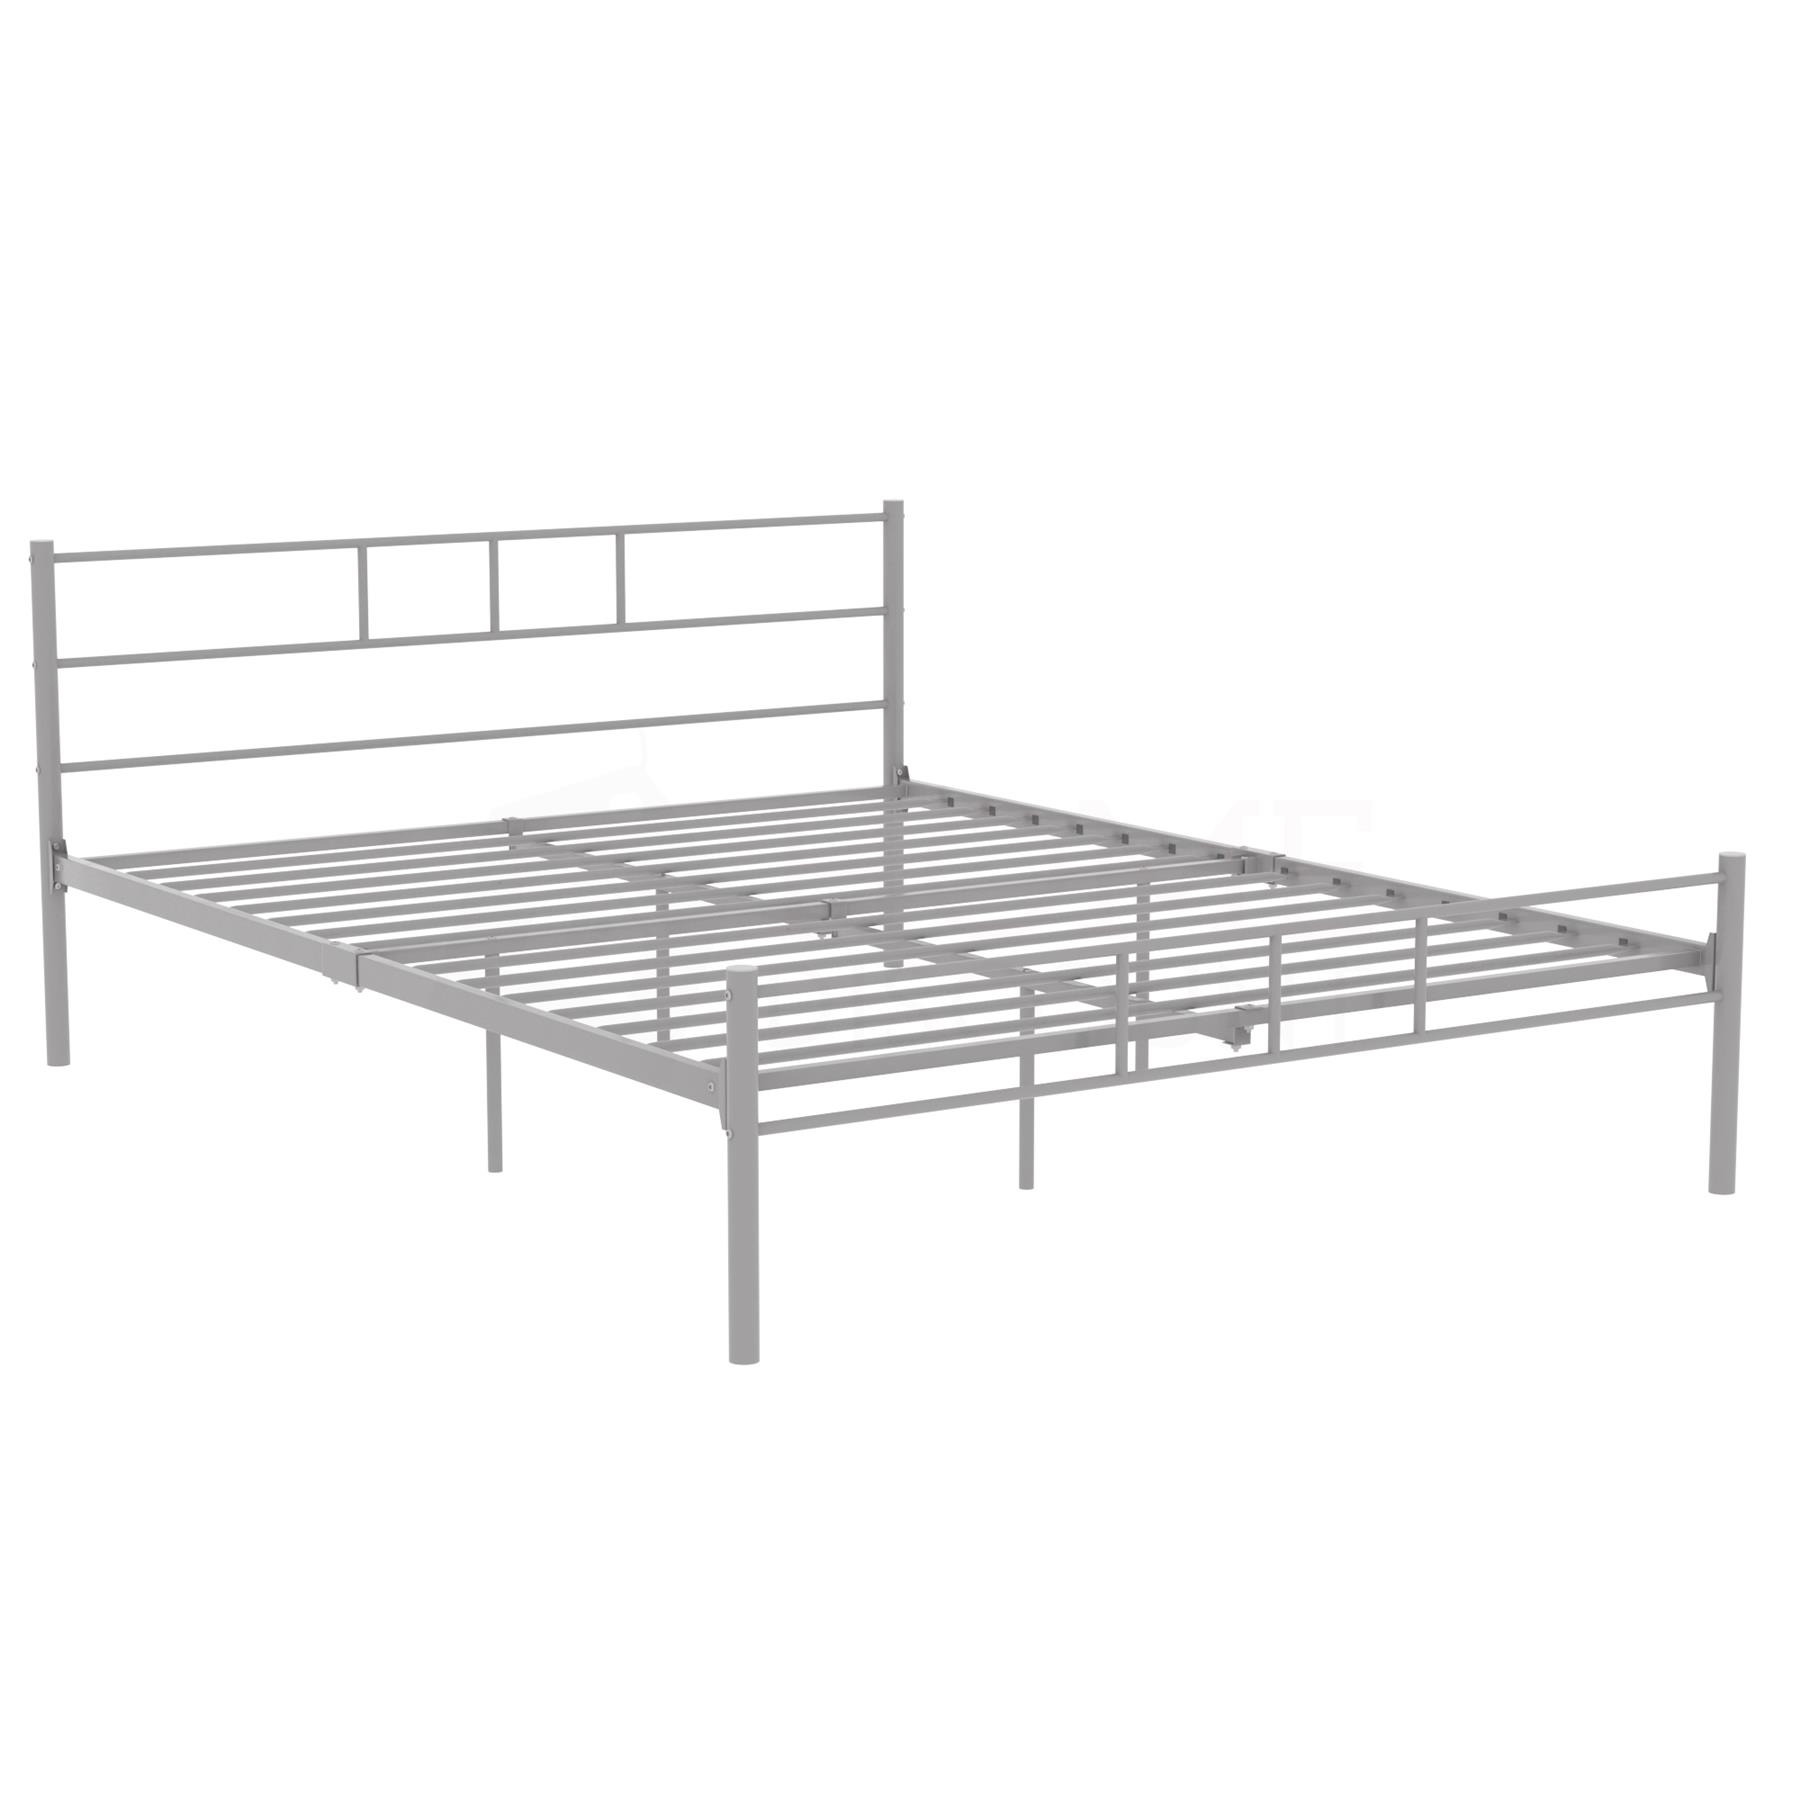 Dorset-Double-King-Size-Single-Bed-Metal-Steel-Frame-4ft6-5ft-Bedroom-Furniture thumbnail 71